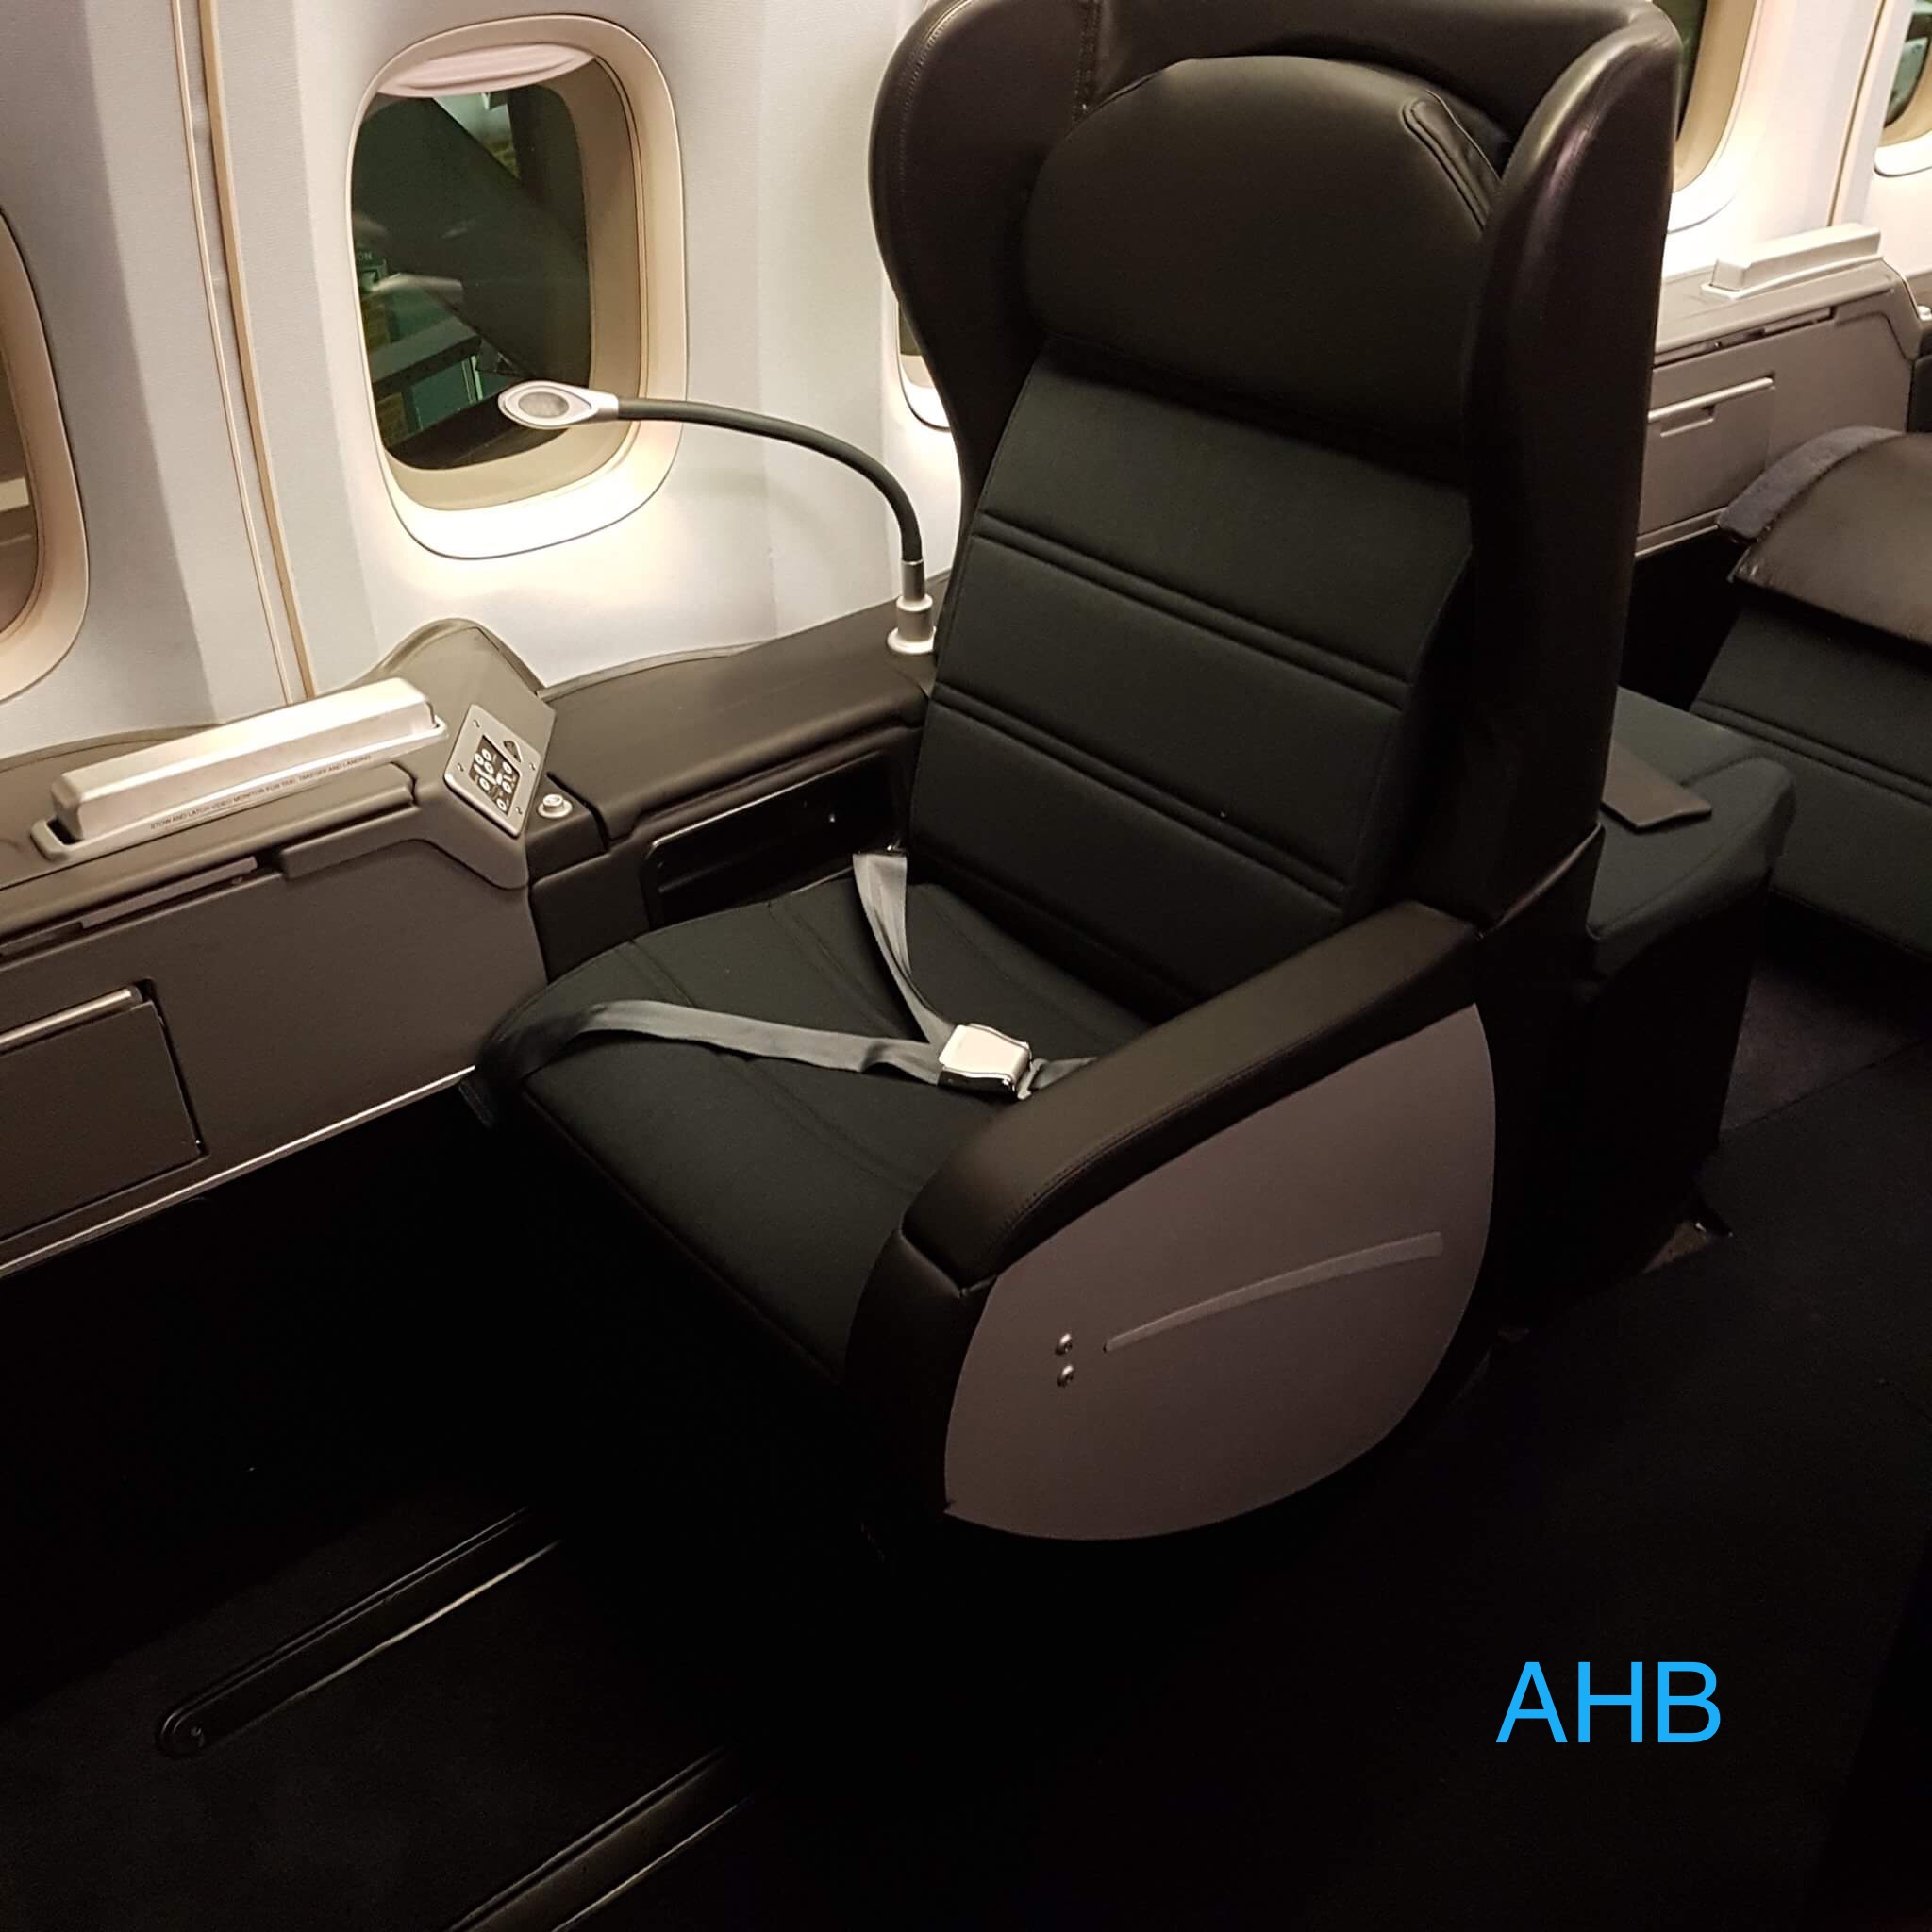 Refurbished Boeing 747s Offer More Seats Lie Flat Beds State Of The Art Inflight Entertainment Enhanced Interiors Picture British Airways